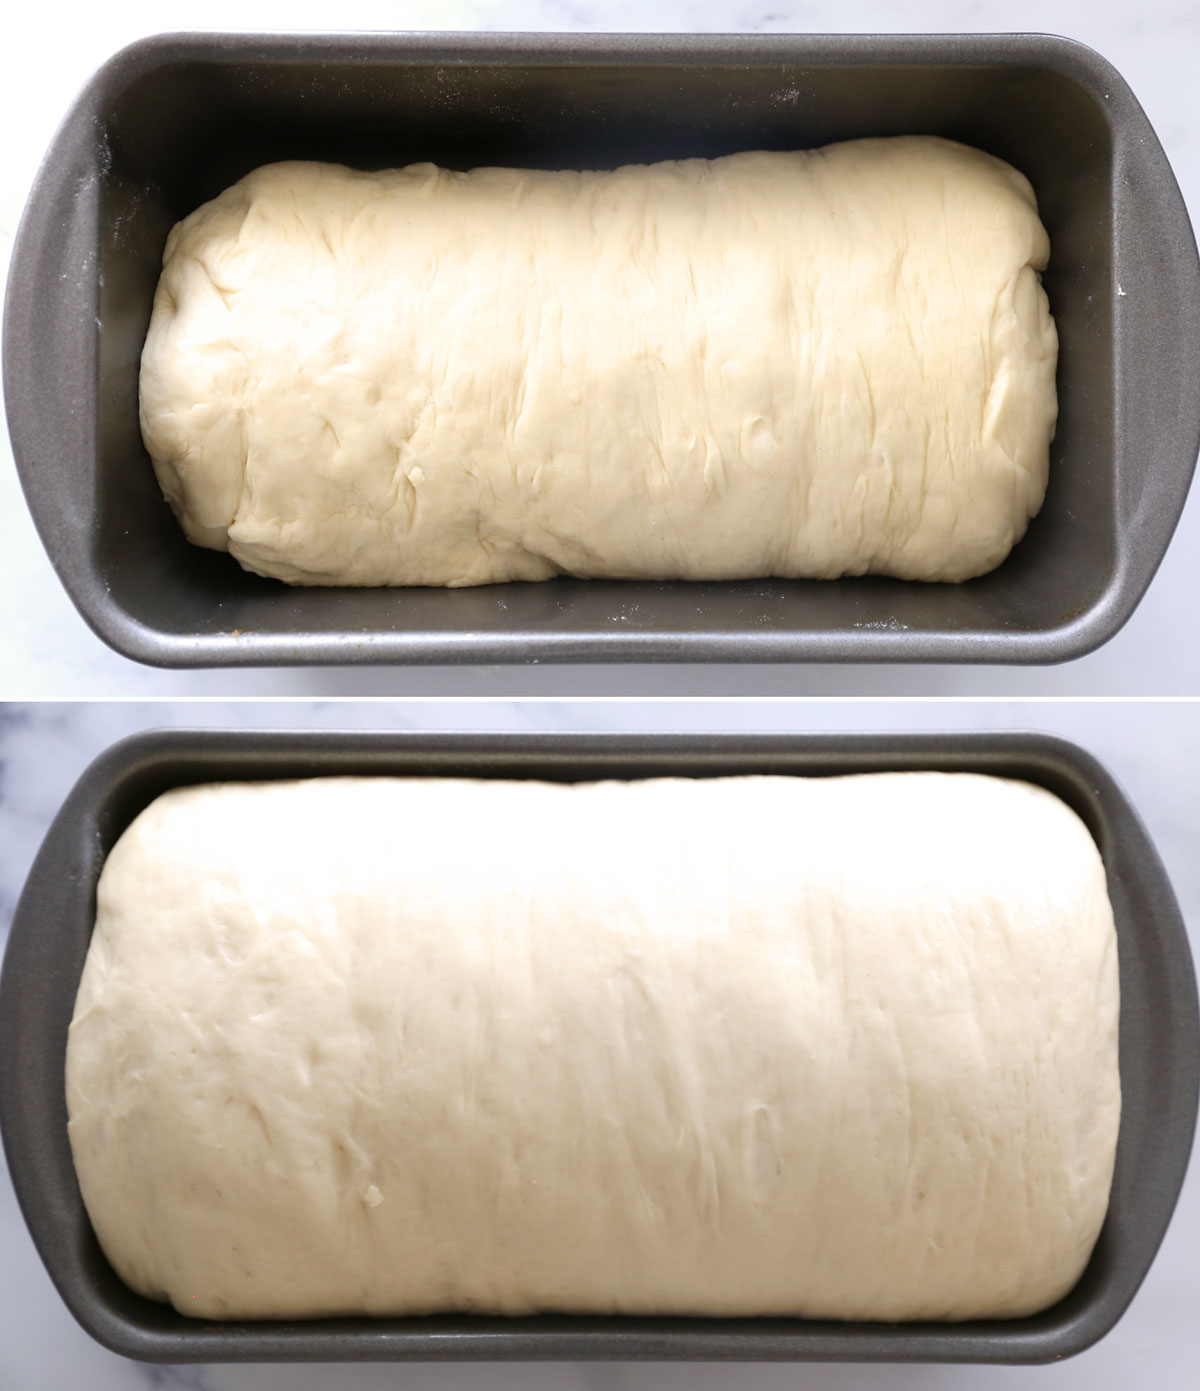 Homemade bread: before and after the second rise